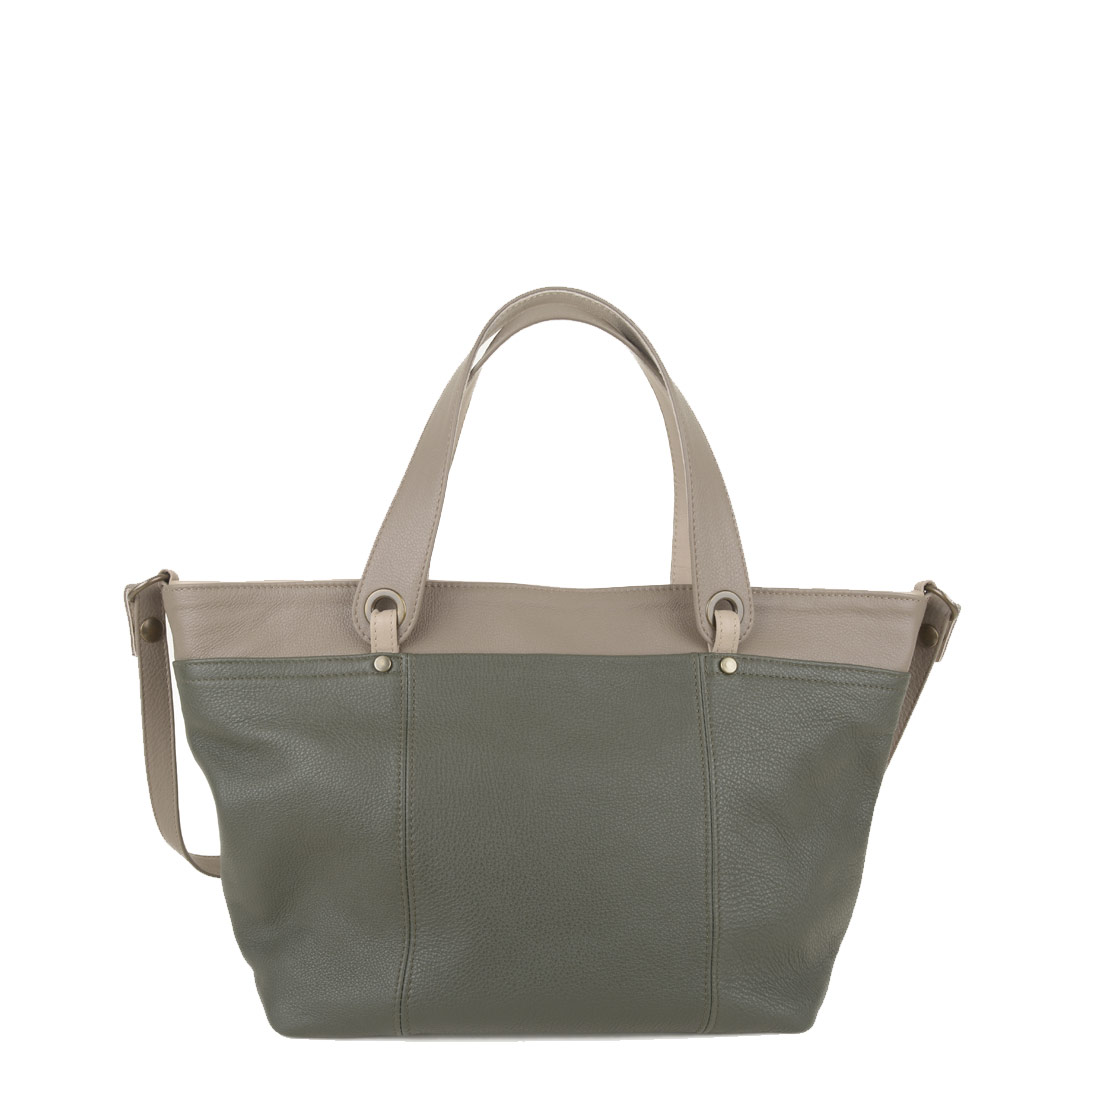 Lucy Loden Leather Tote Bag